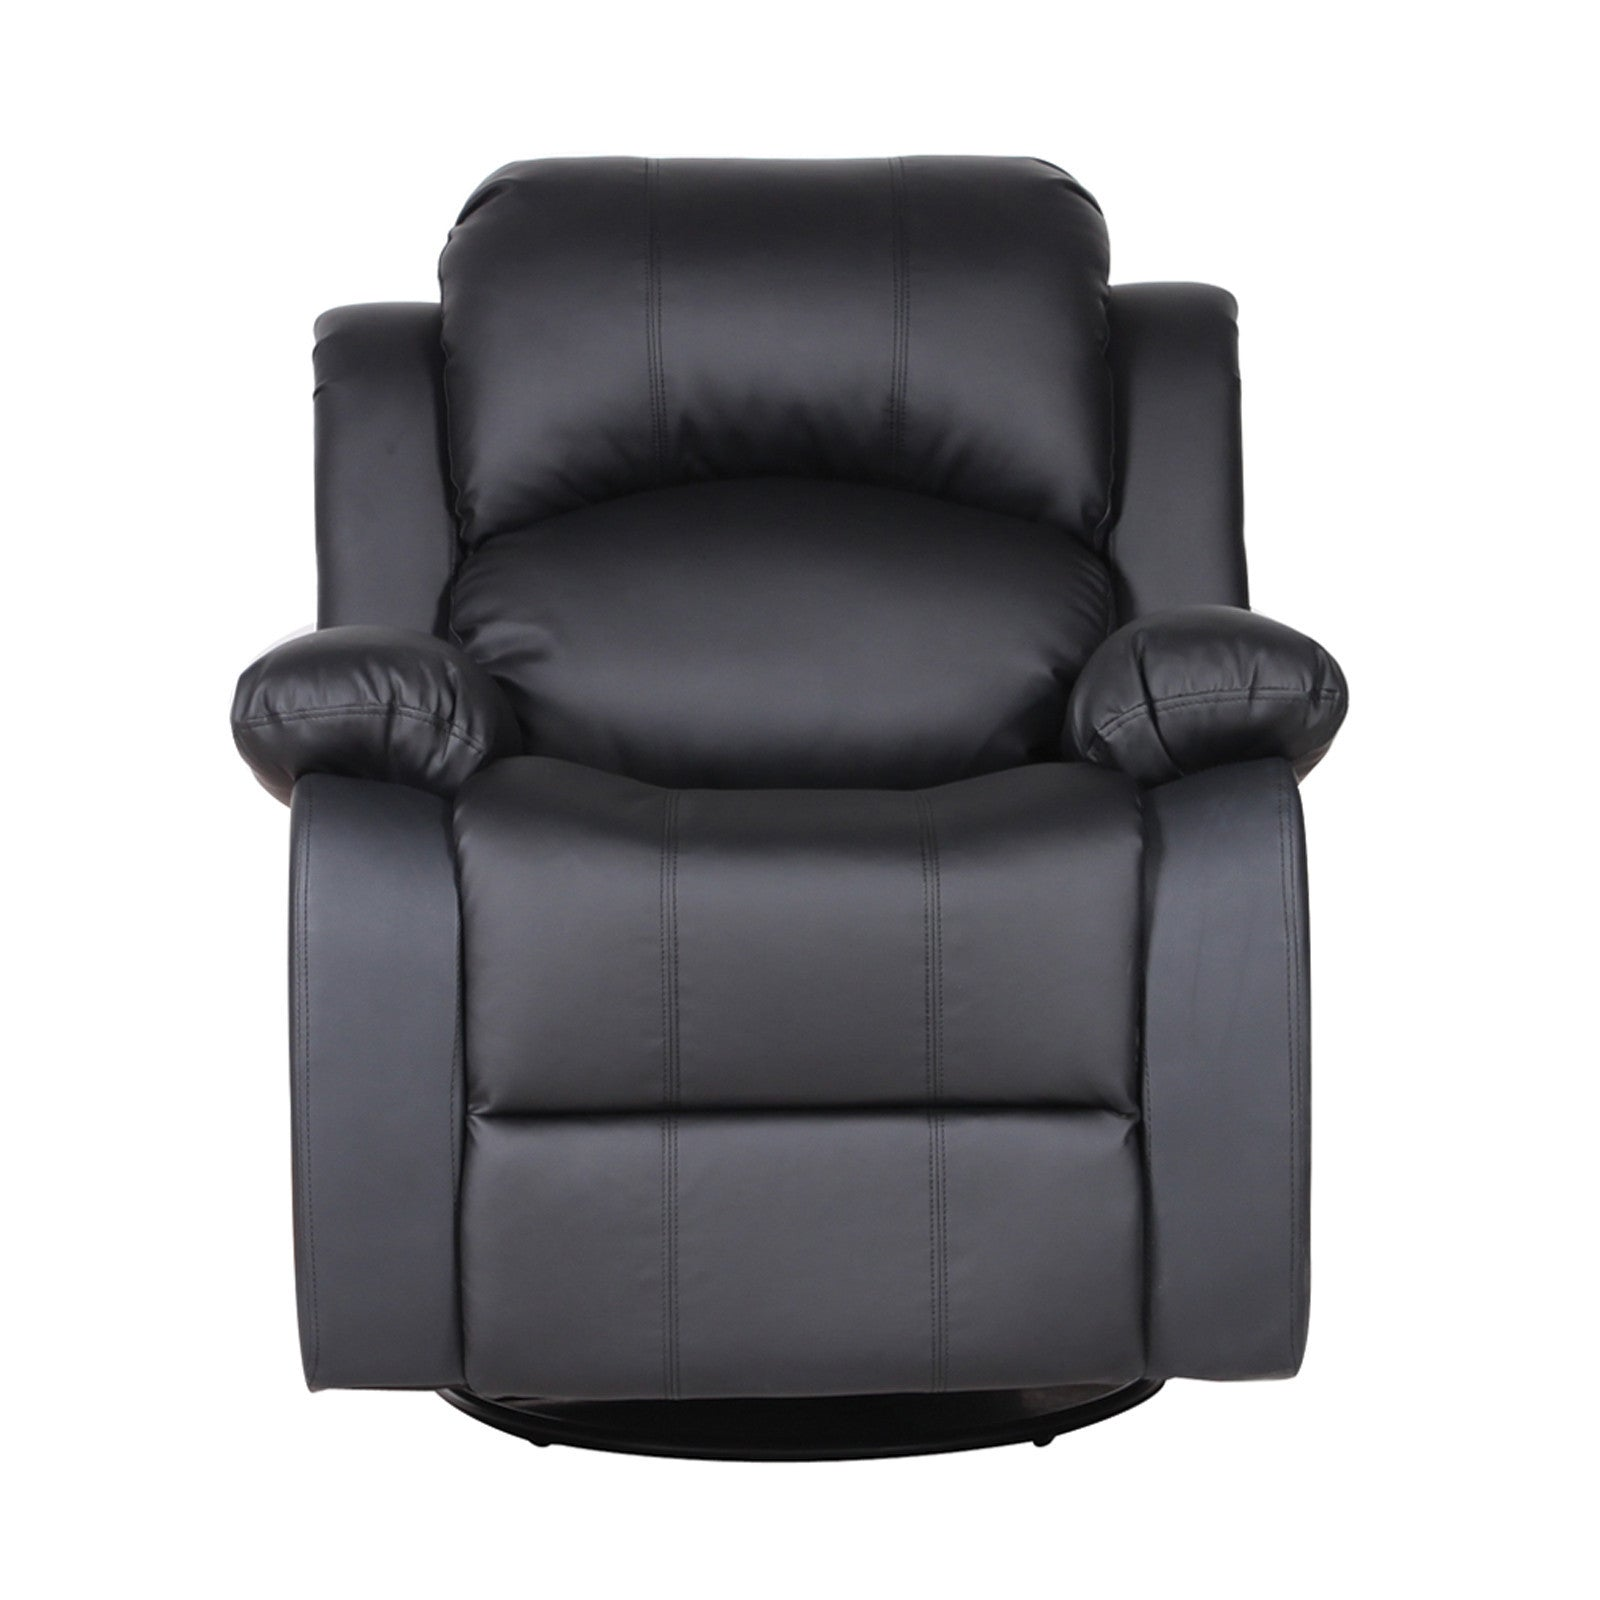 John Bonded Leather Recliner Rocker Swivel Chair